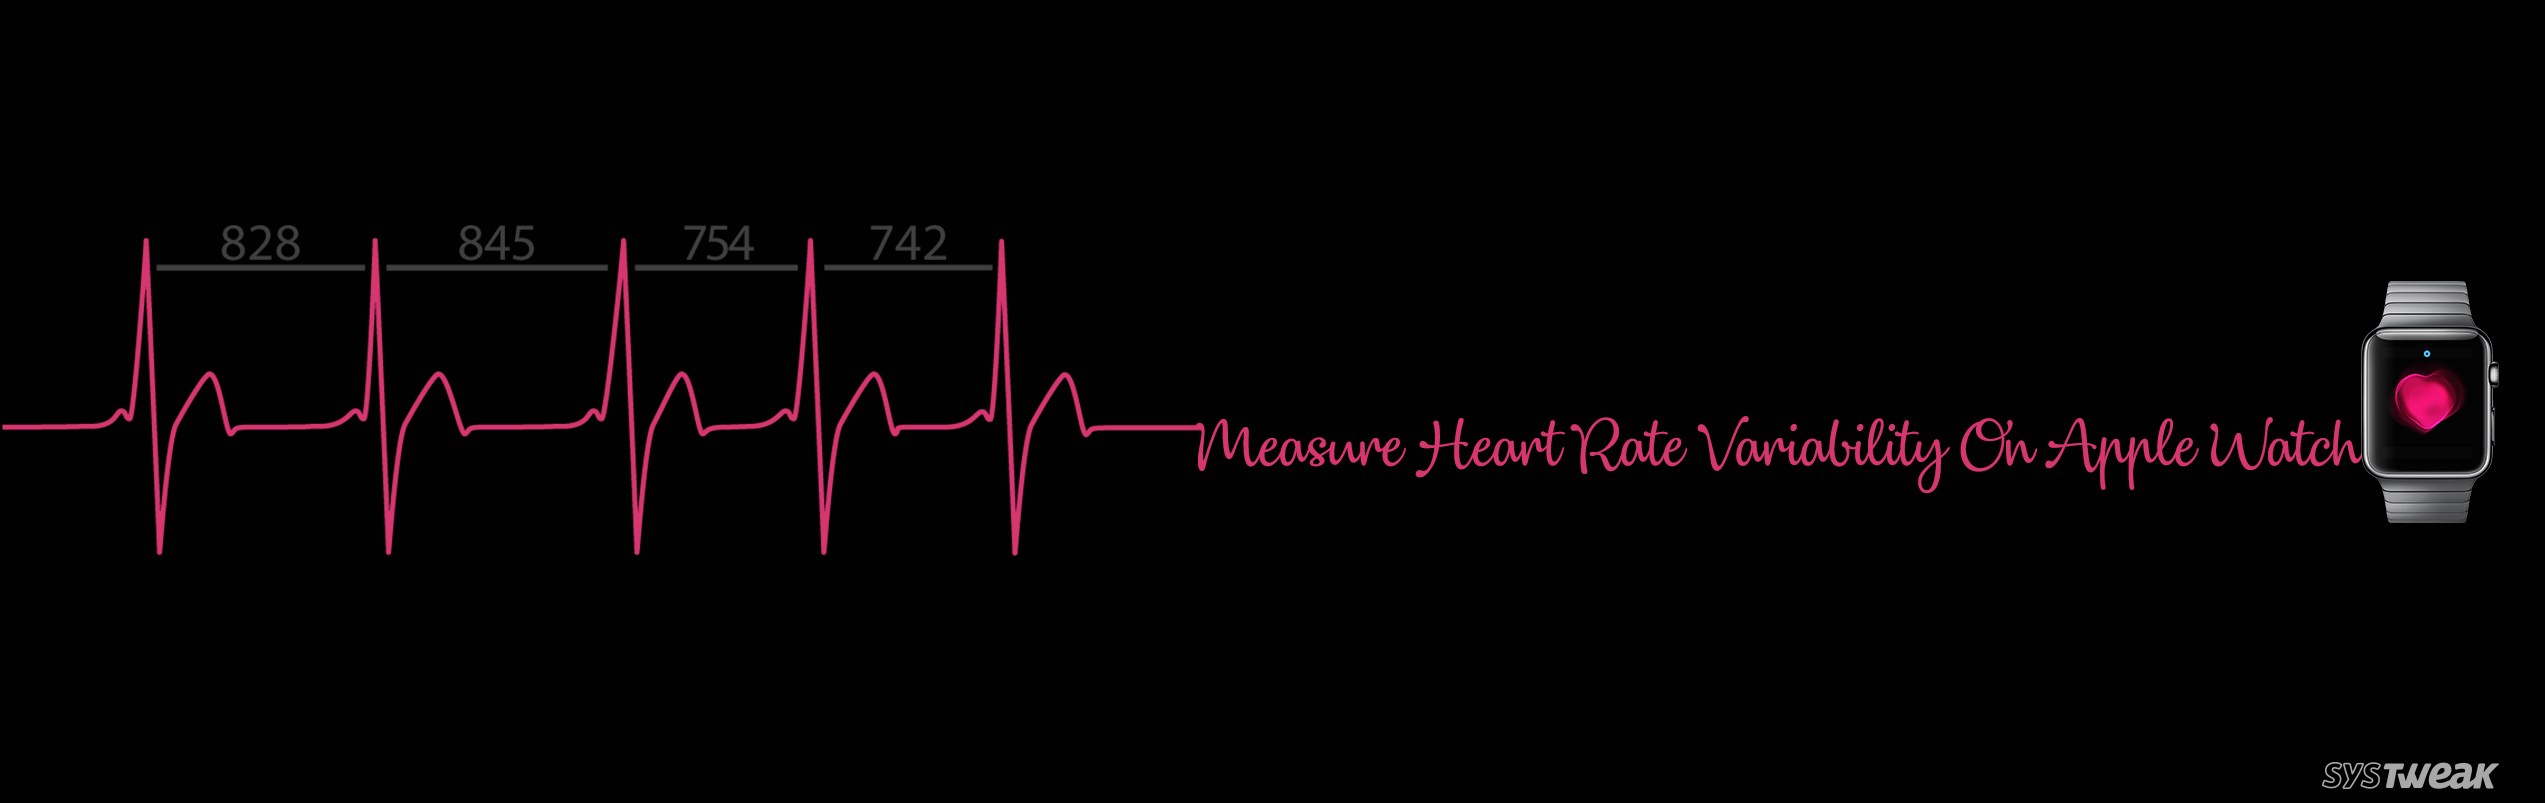 How to Measure Heart Rate Variability On Apple Watch